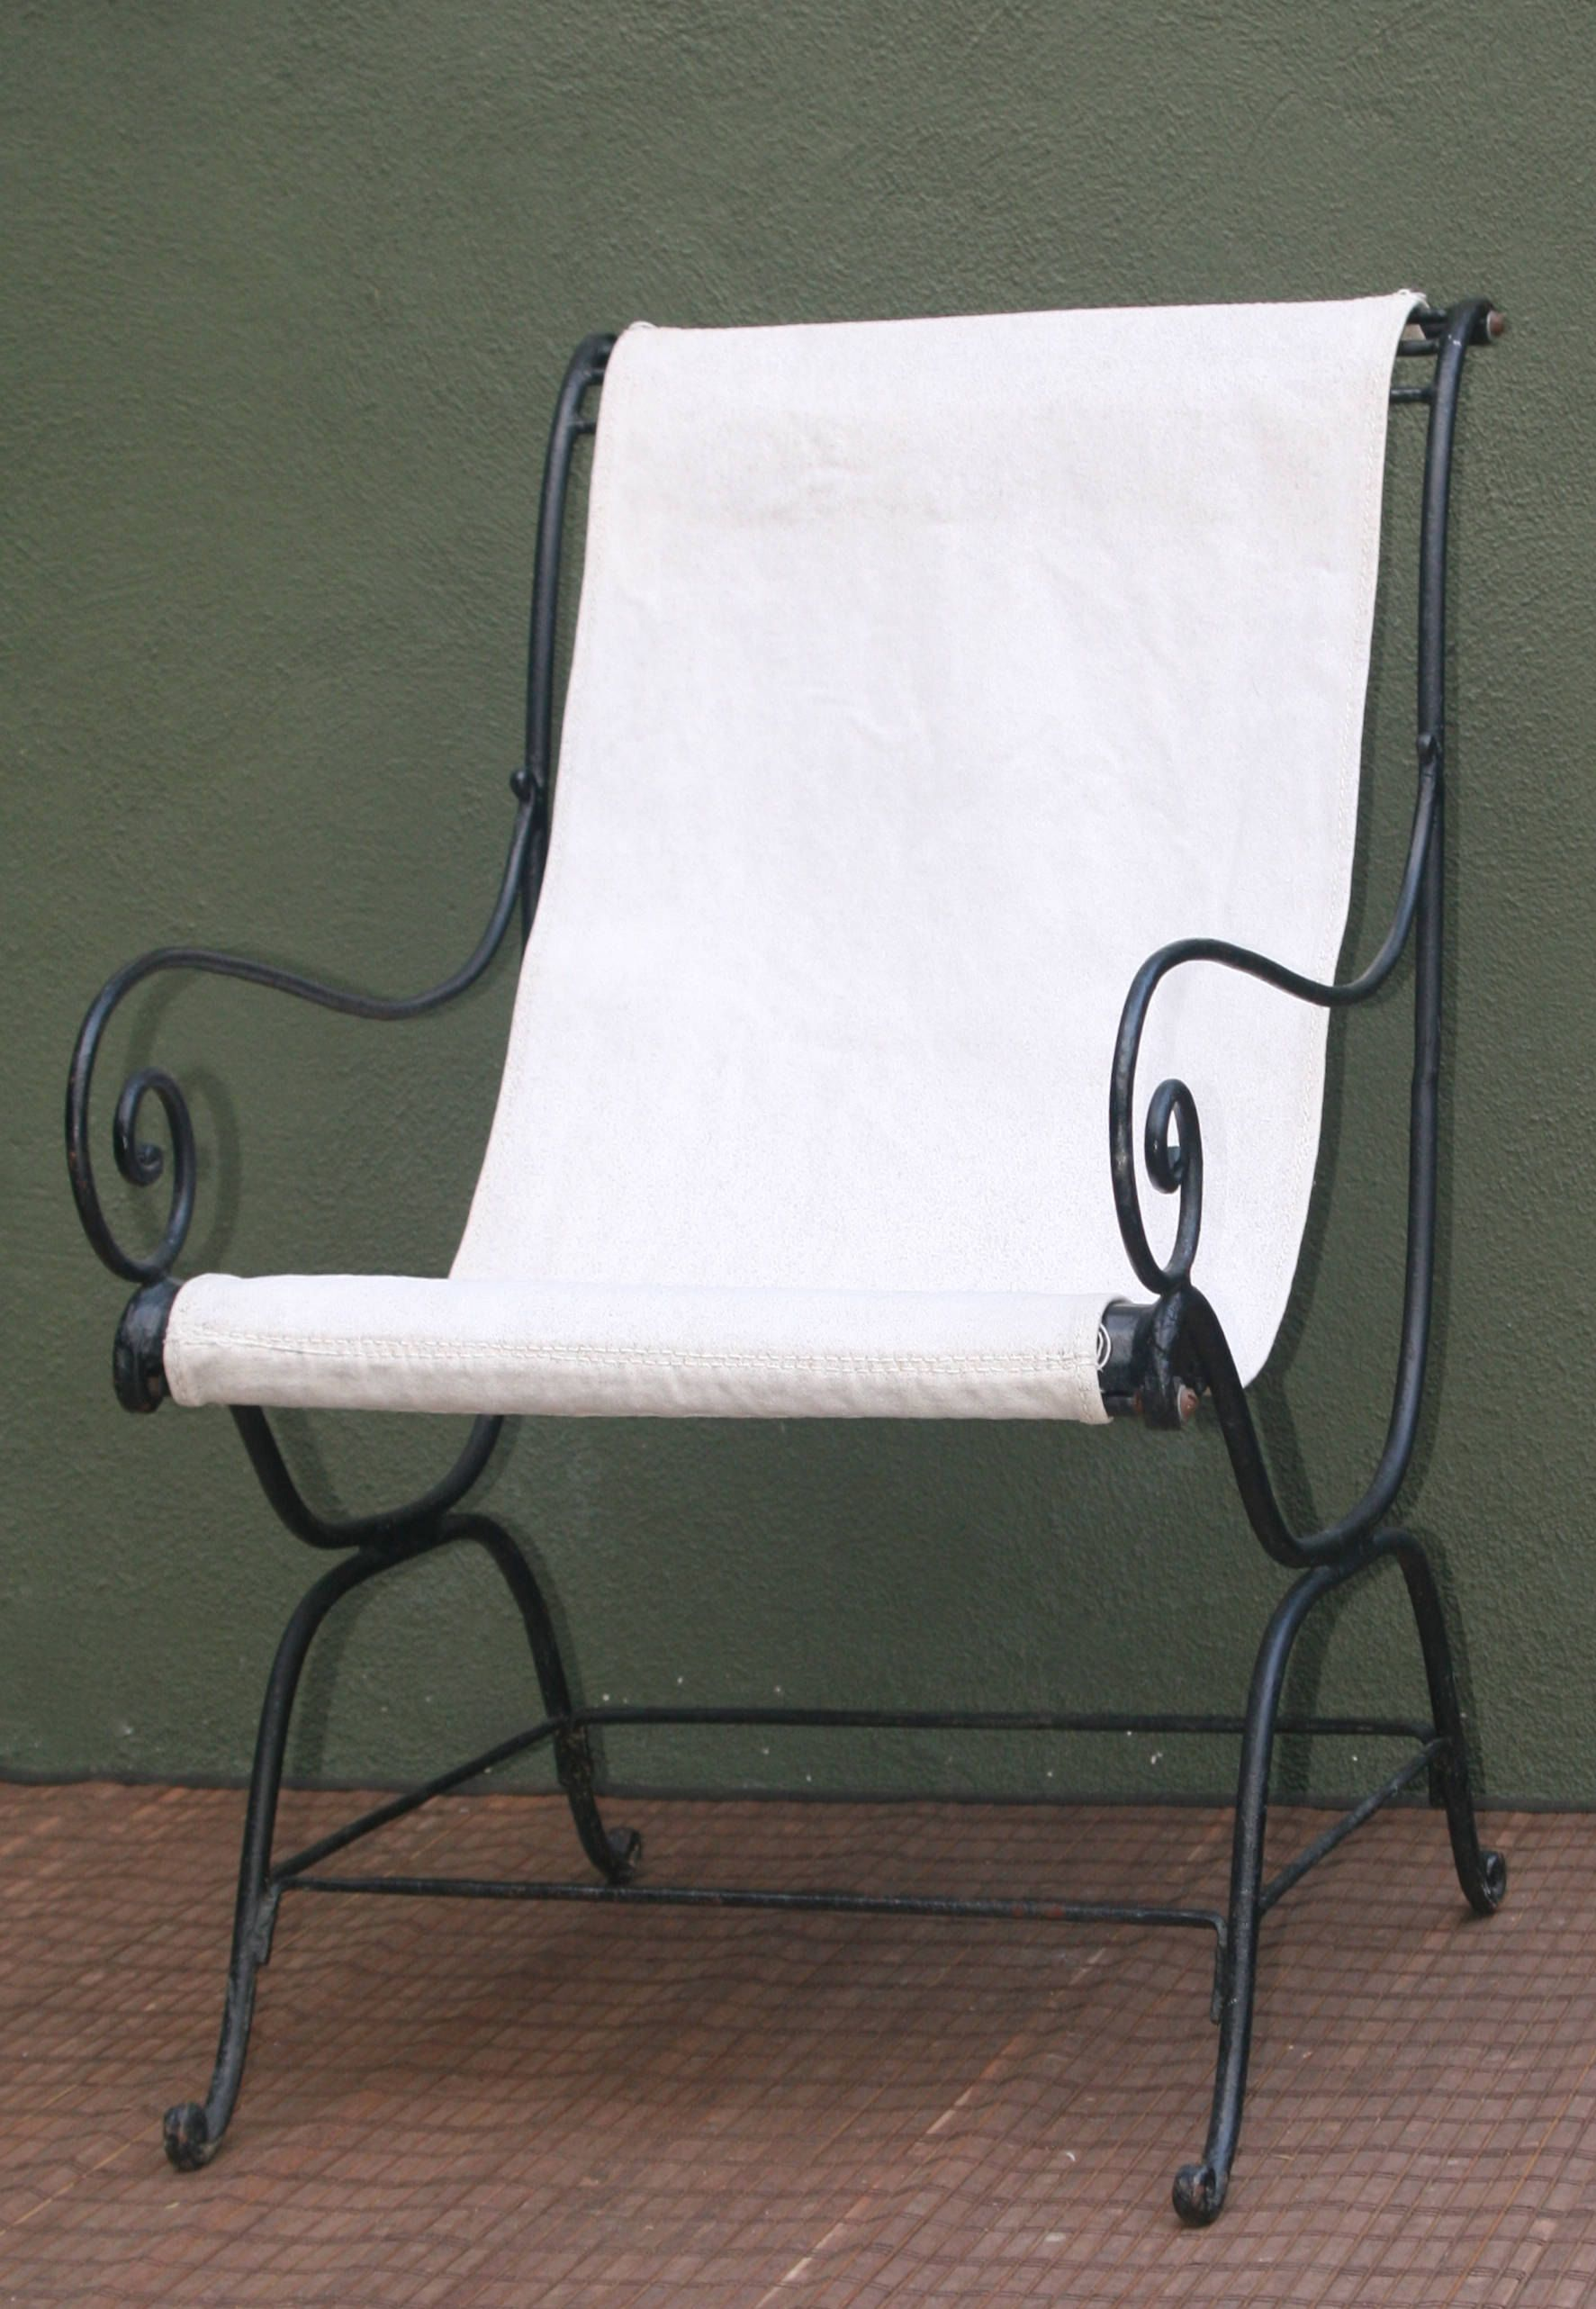 canvas sling chair modern chairs vintage wrought iron with seatvintage seat 37 high 27 5 deep 20 wide by theoldgreengarage on etsy